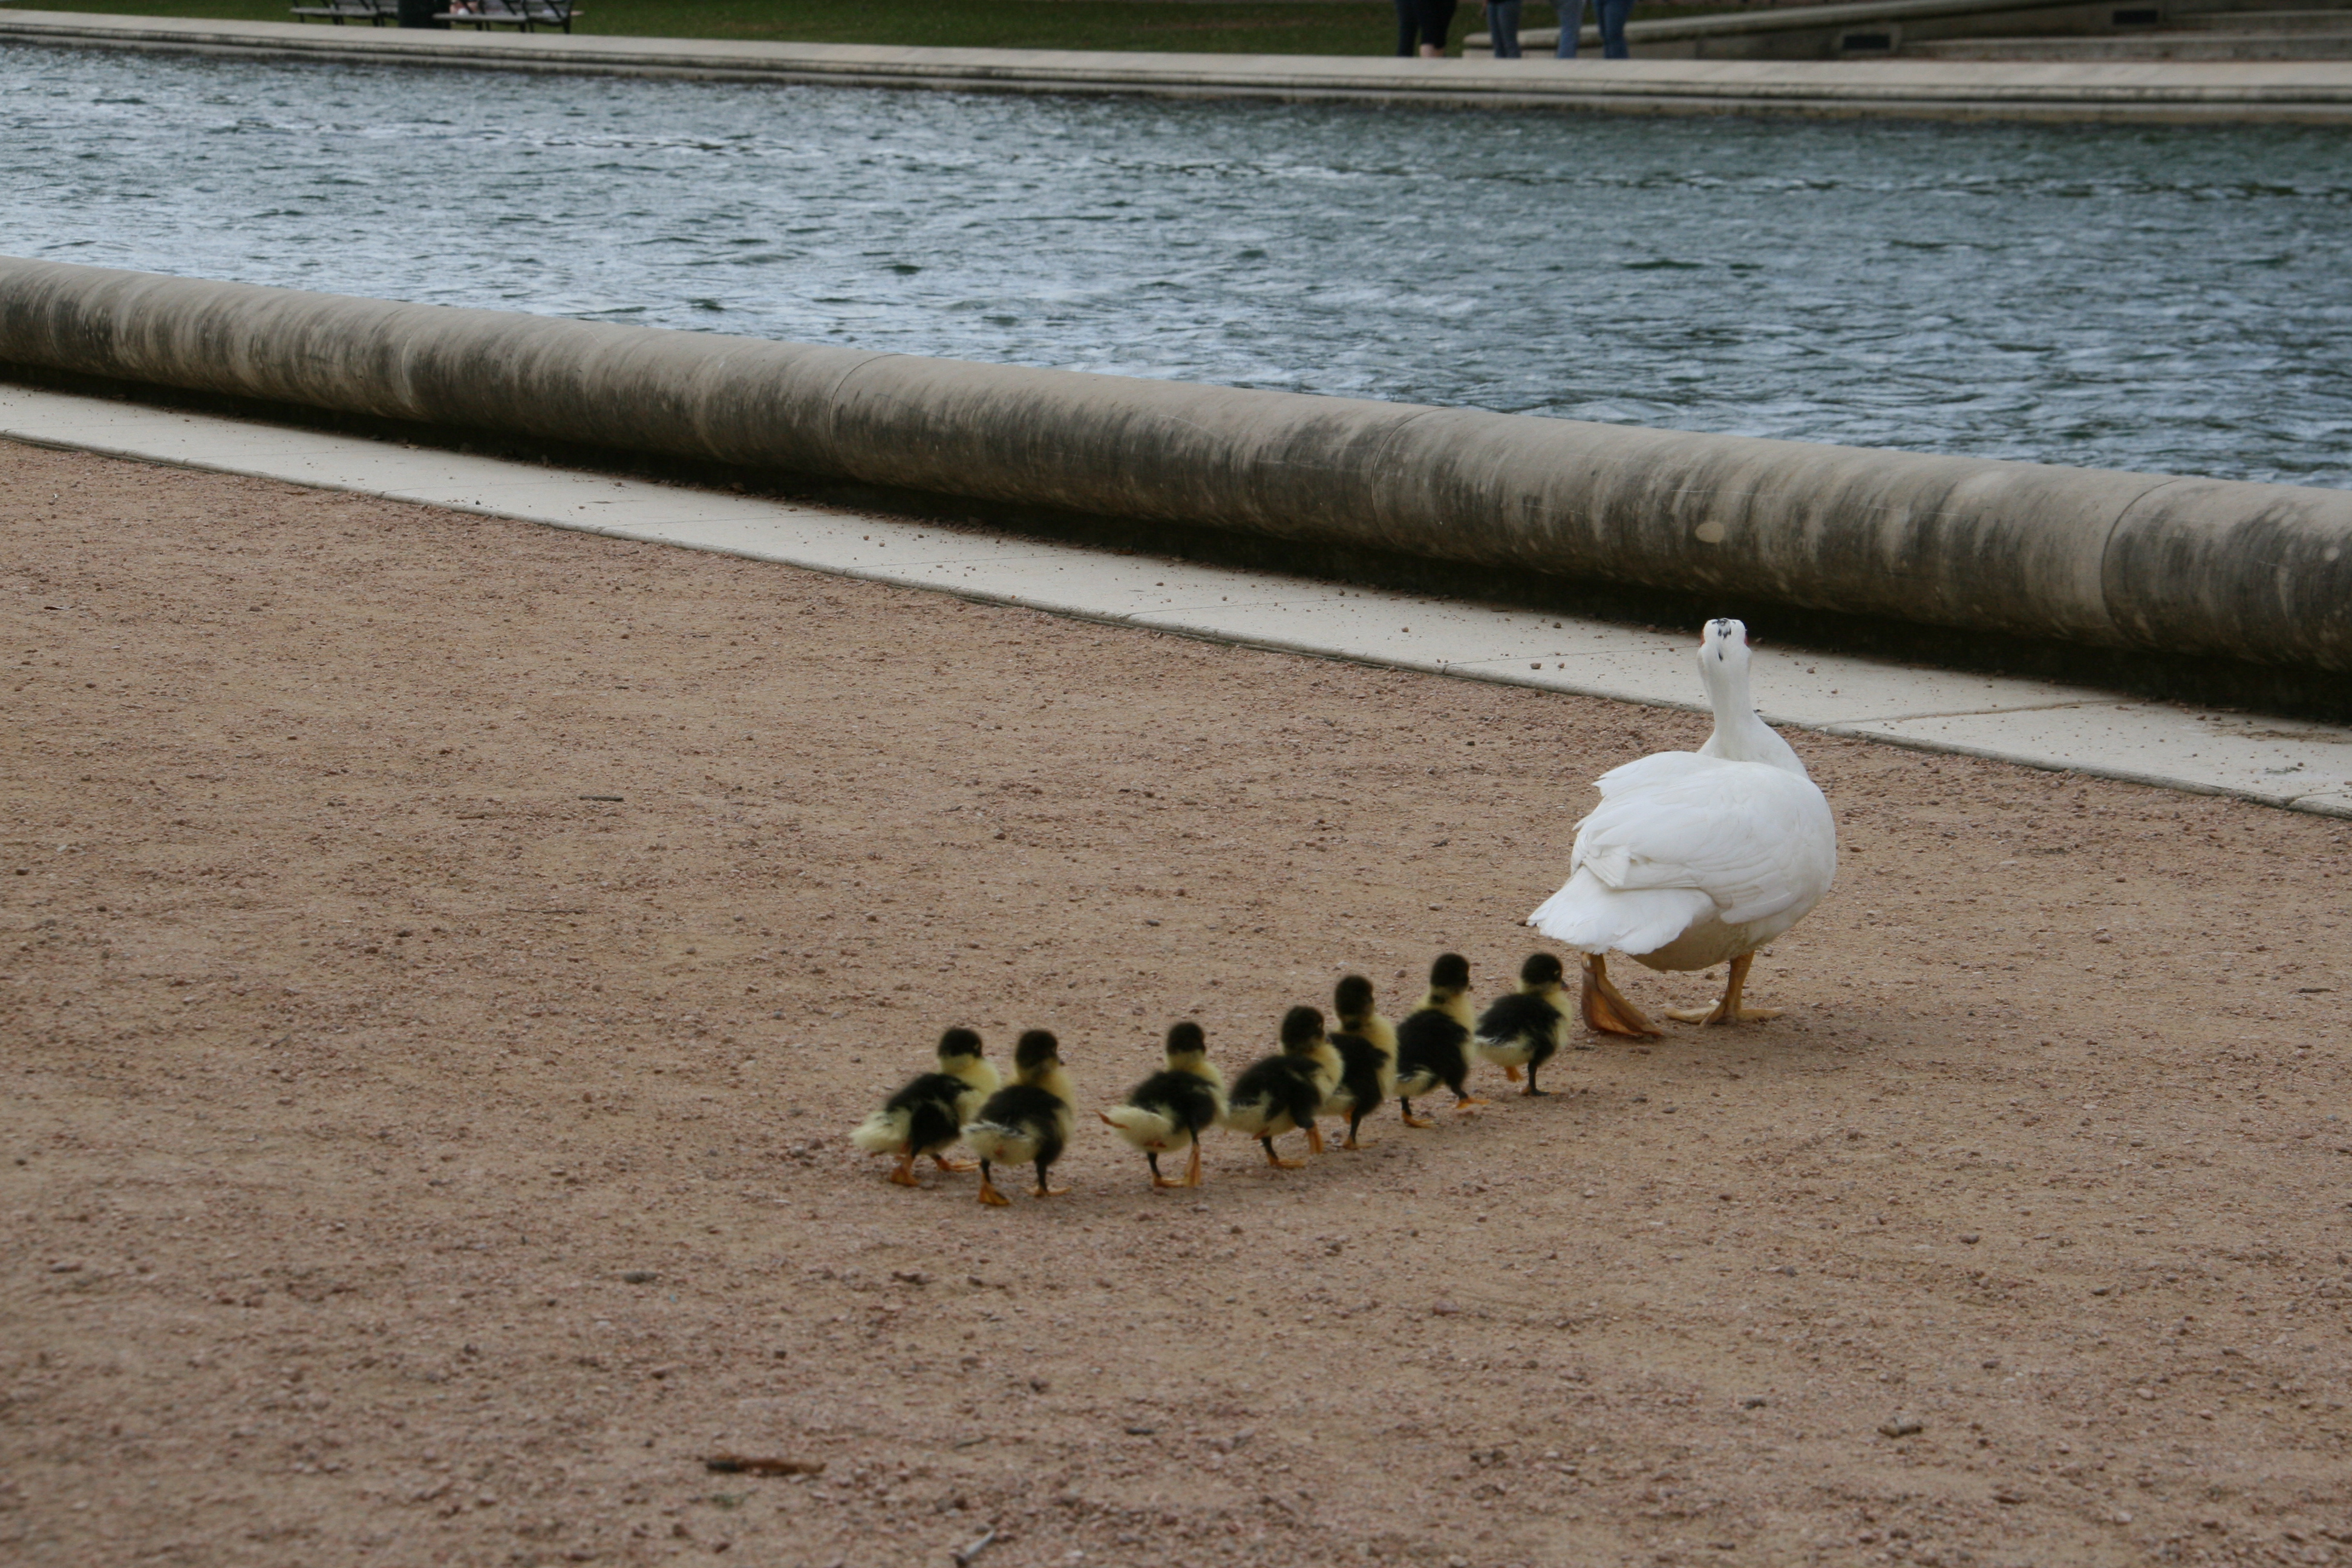 ducks in a row pics4learning